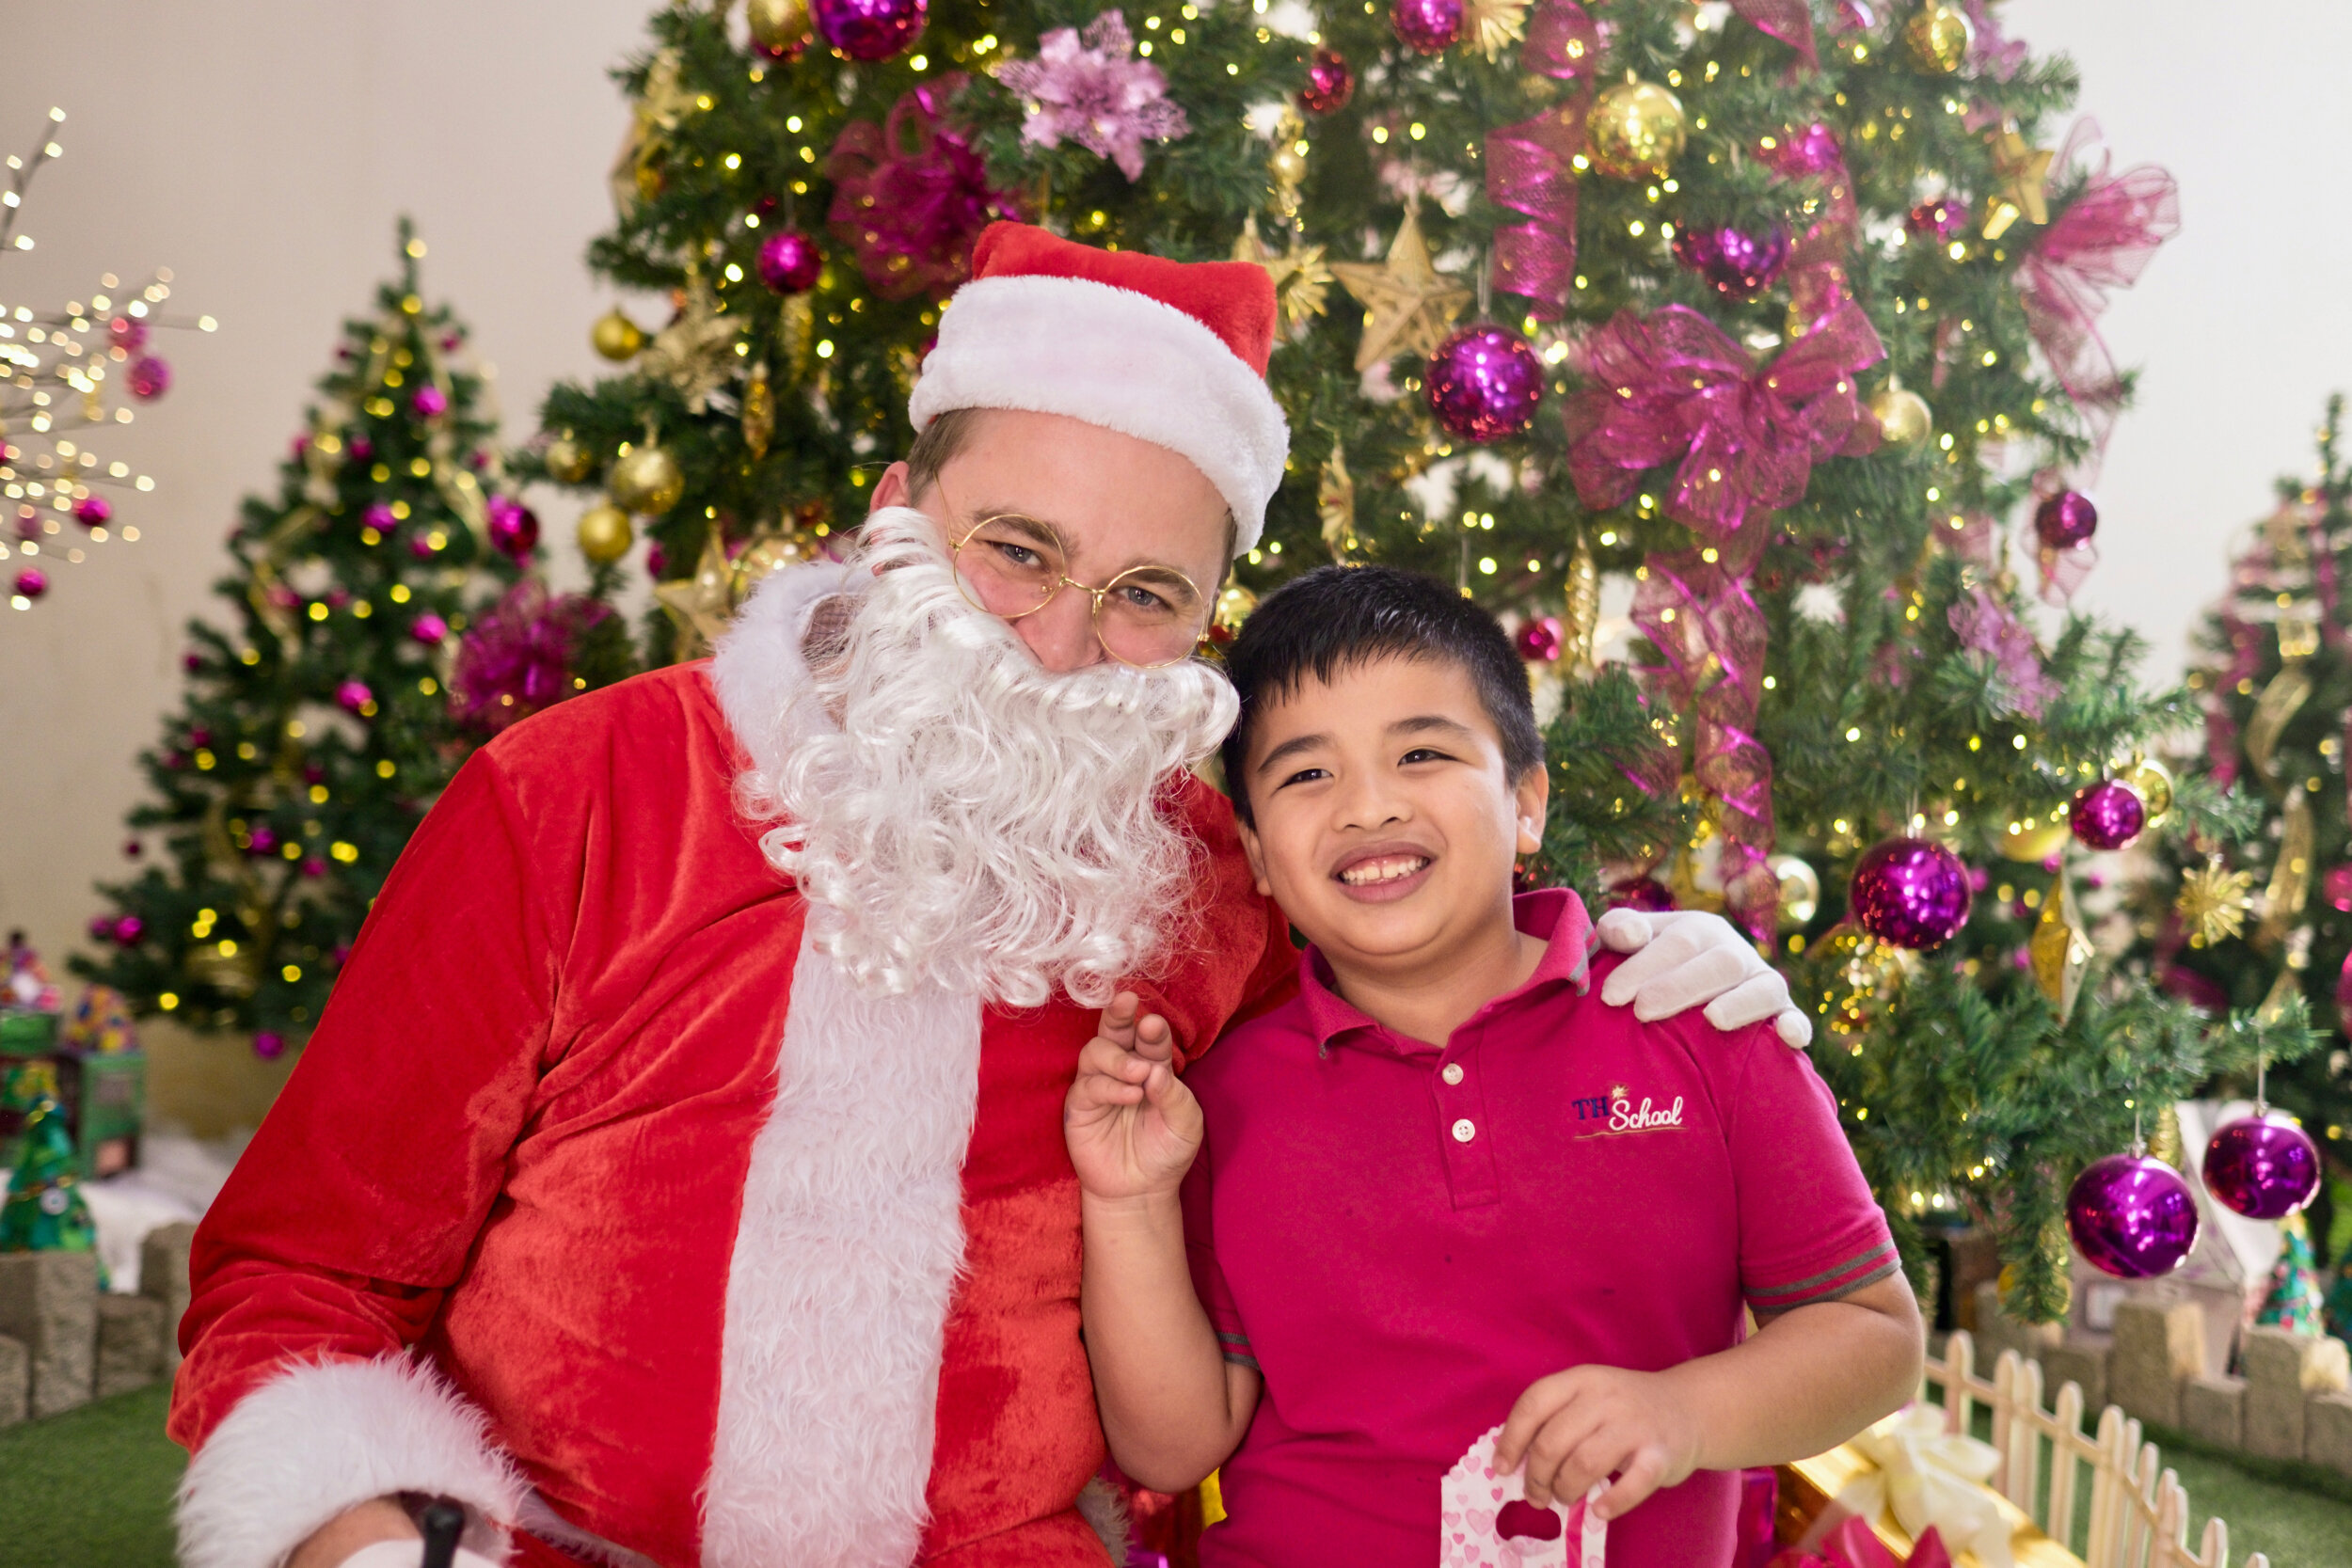 Photoshoot with Santa Clause-594.jpg